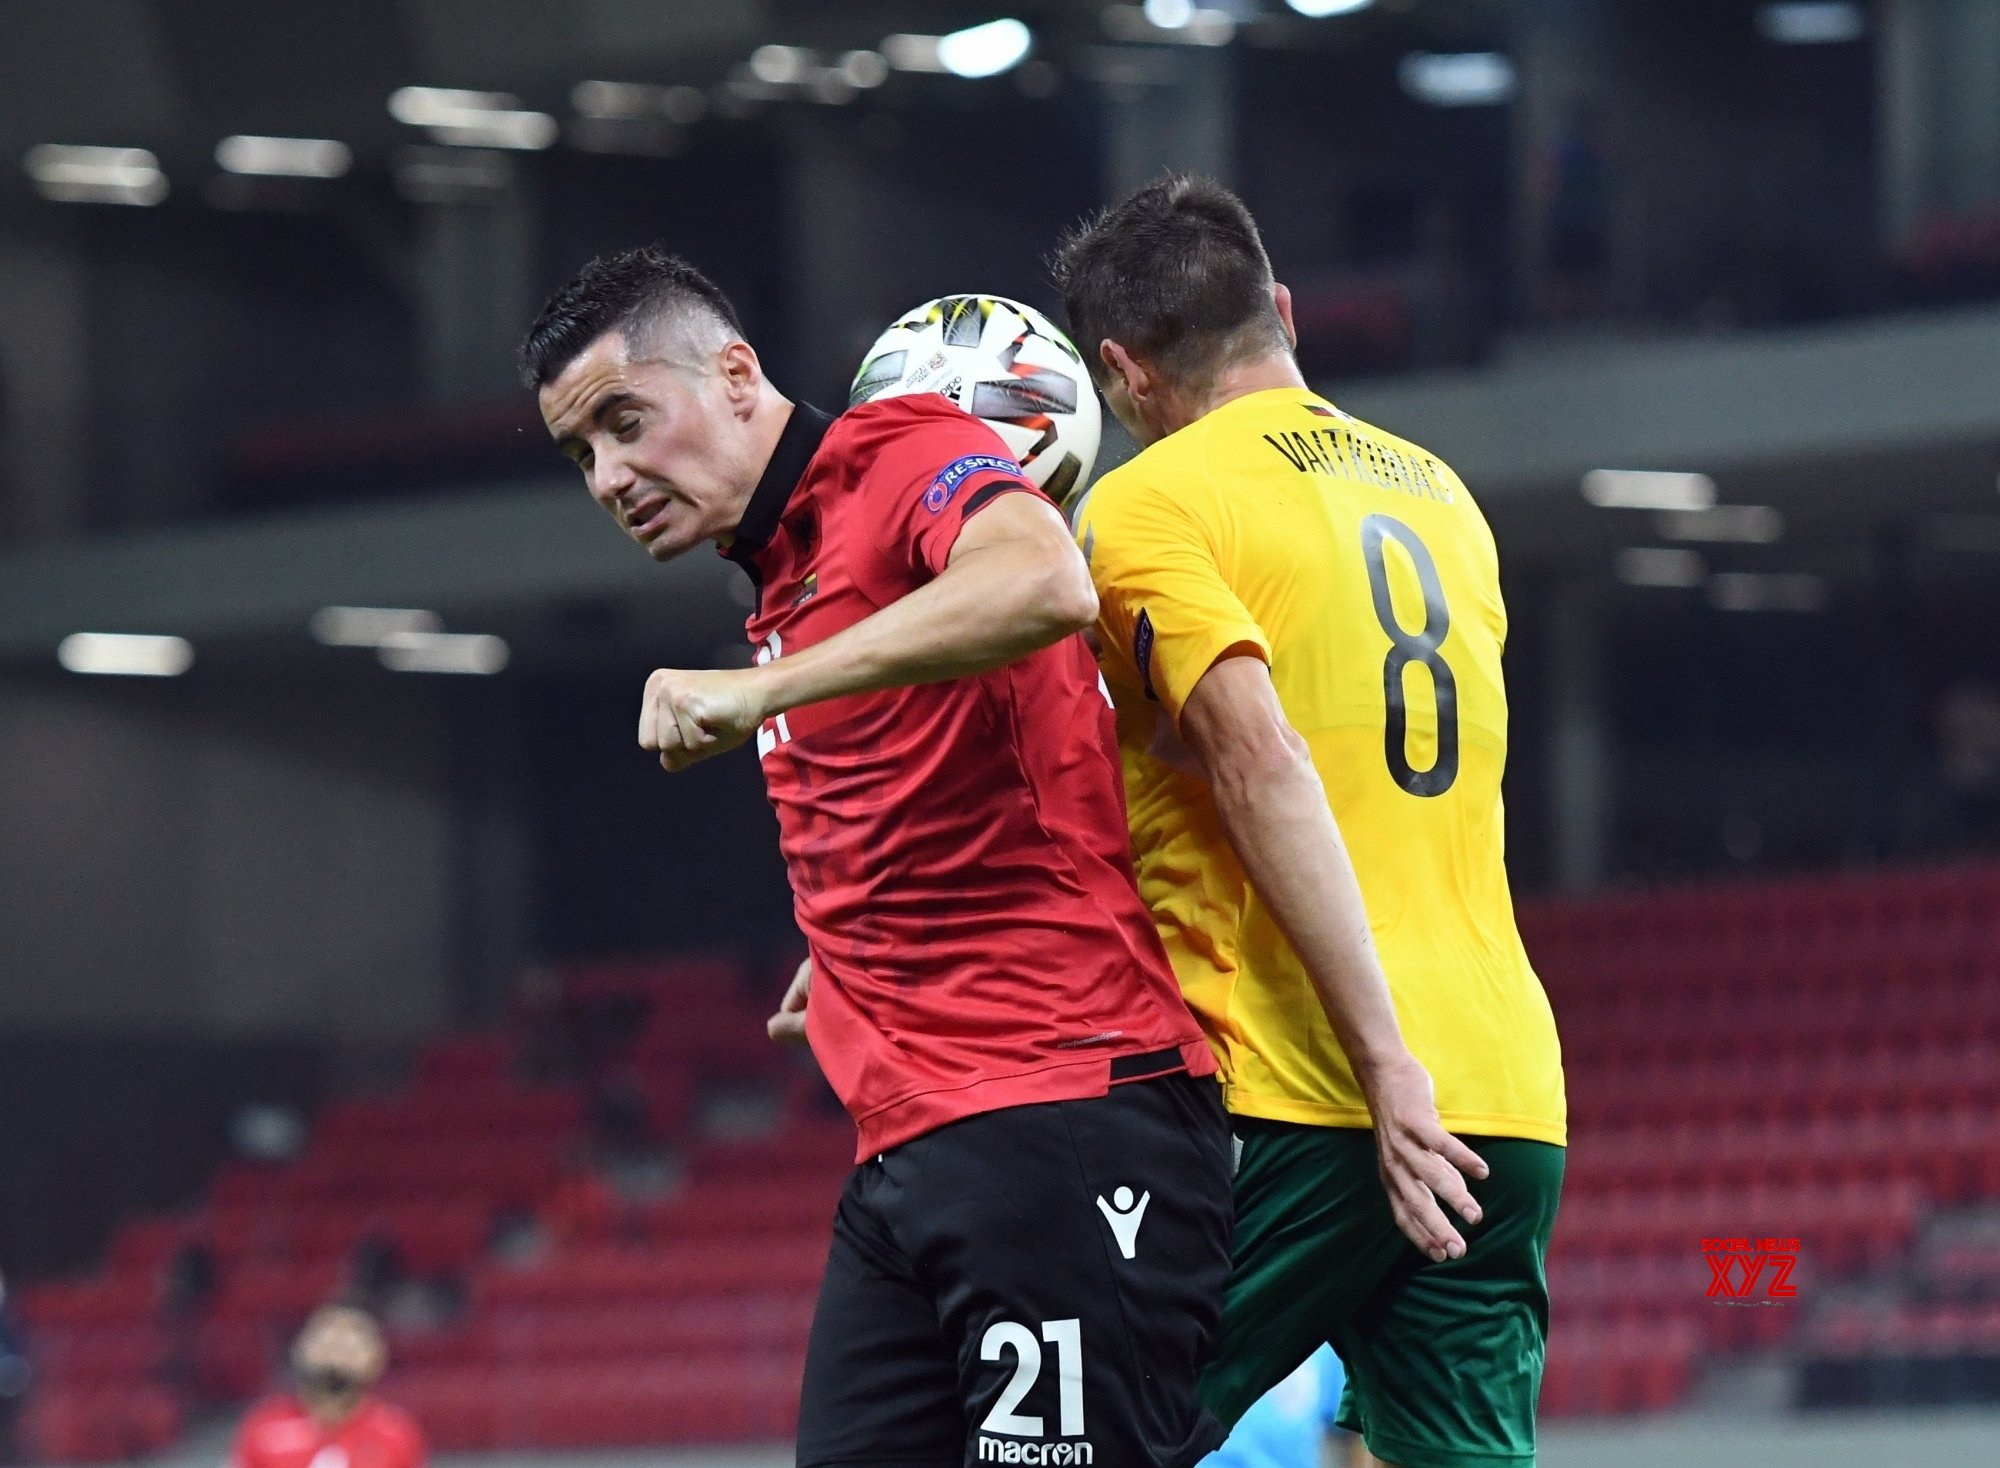 Albania Tirana Football Uefa Nations League Albania Vs Lithuania Gallery Social News Xyz